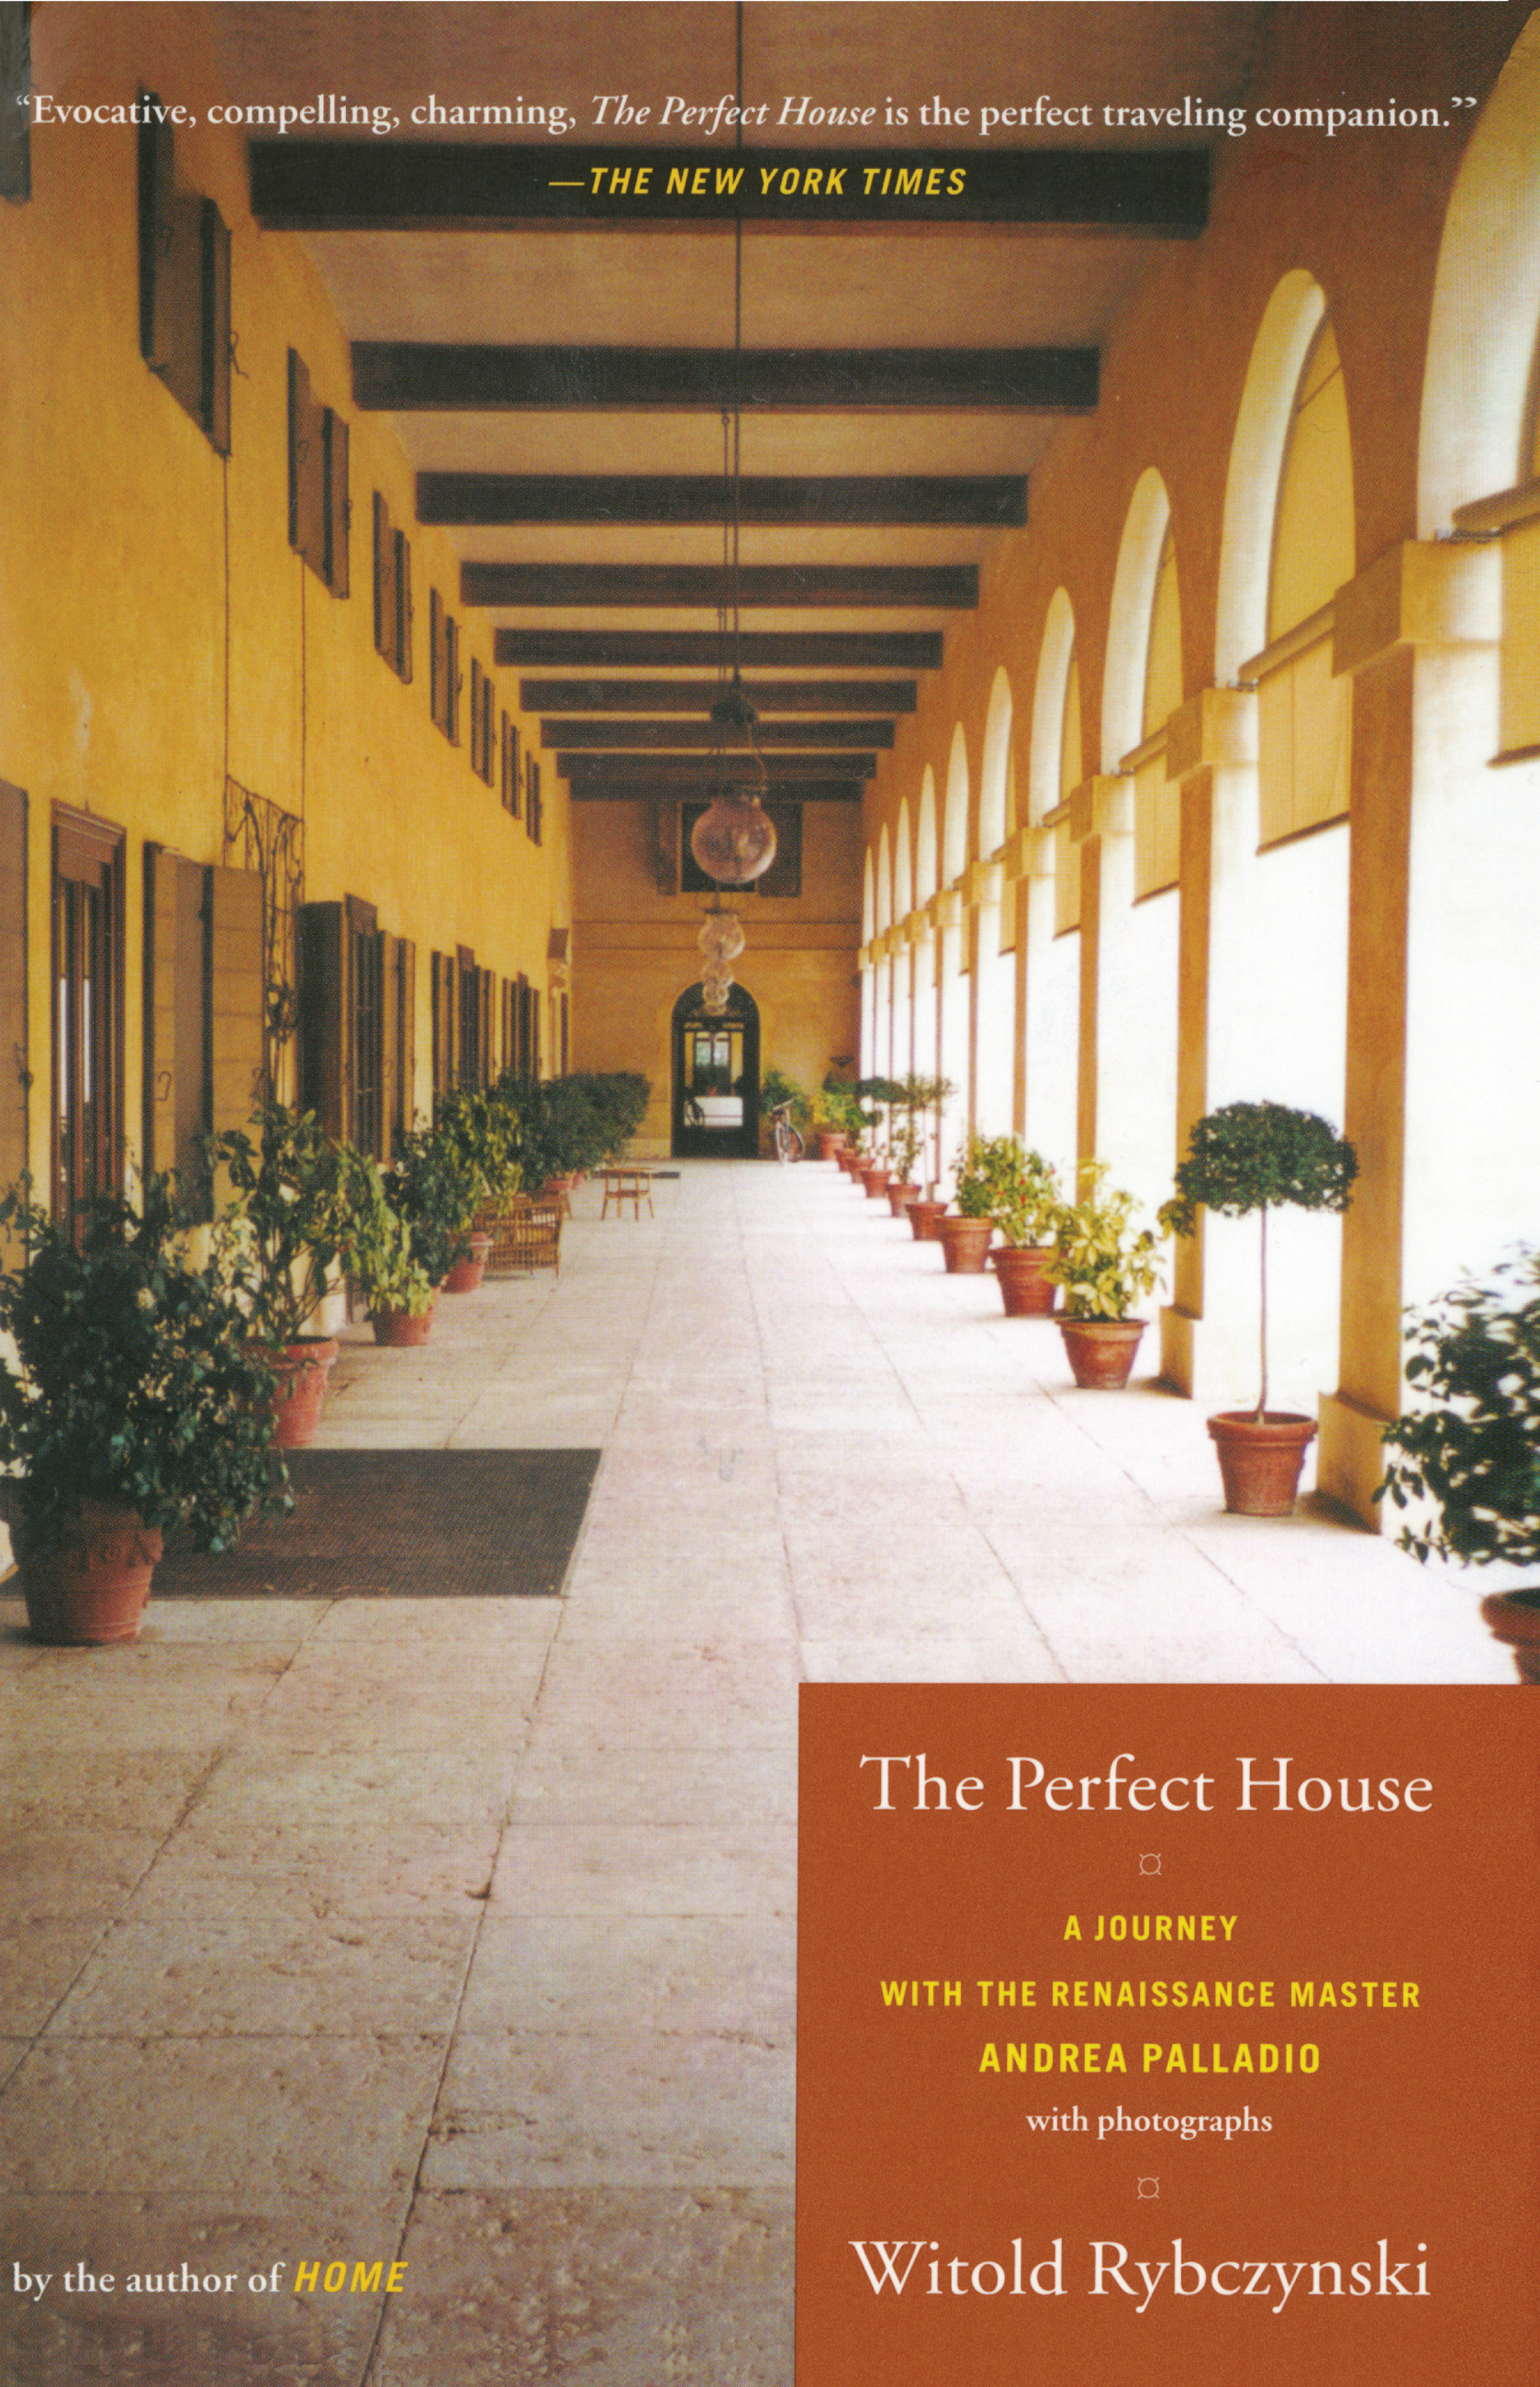 The perfect house book by witold rybczynski official publisher a journey with renaissance master andrea palladio fandeluxe Gallery